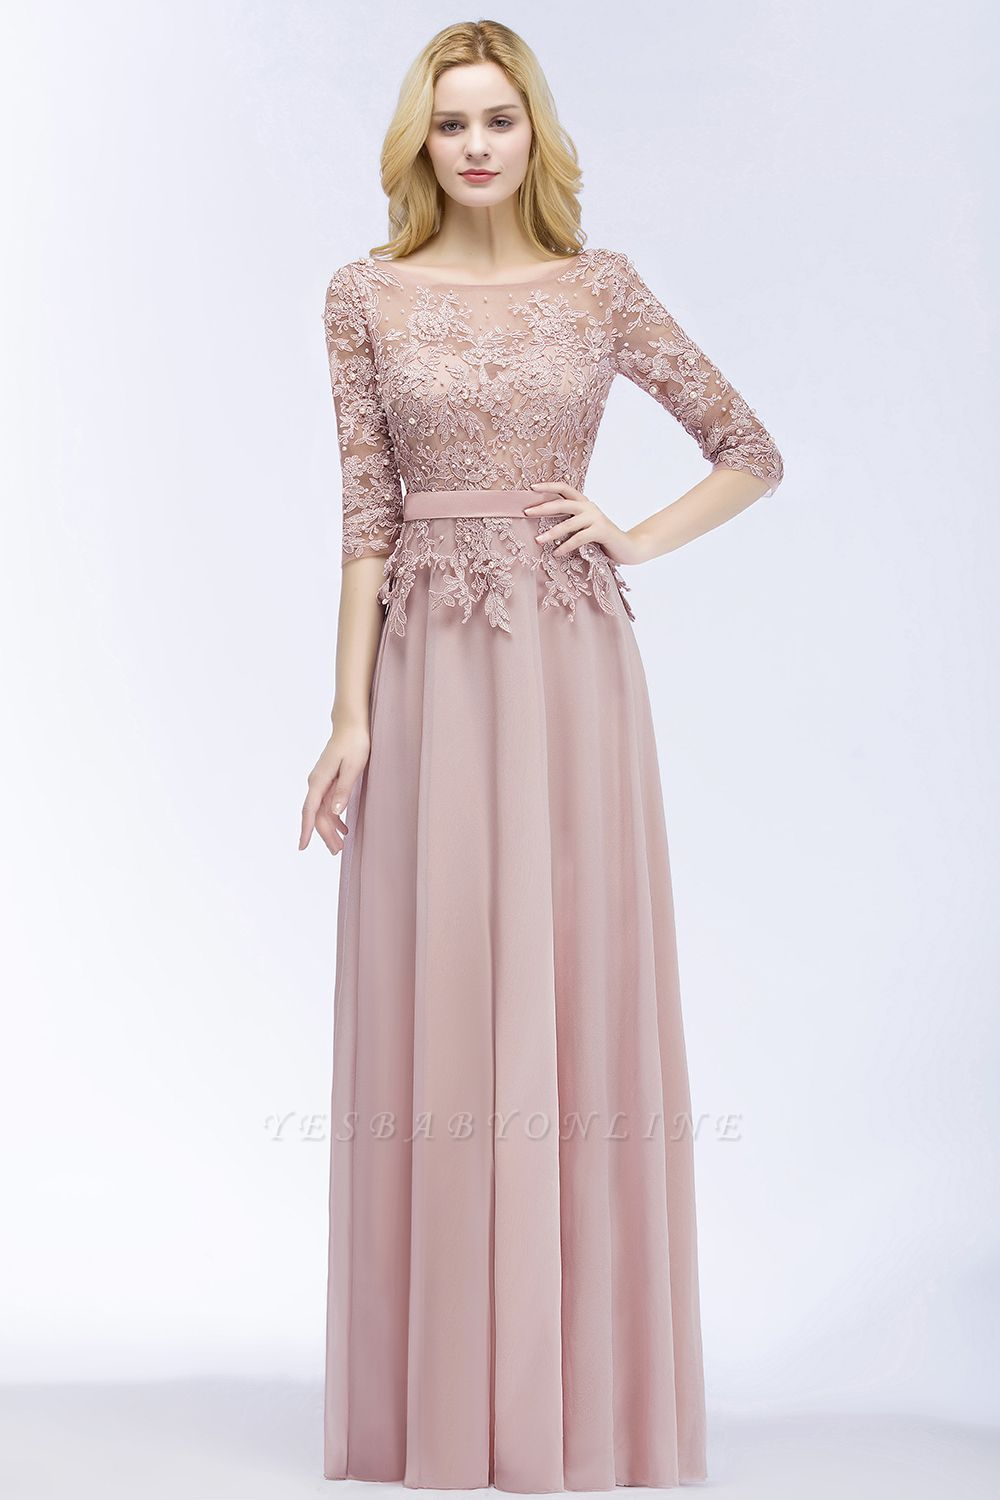 Cheap A-line Floor Length Half Sleeves Appliques Bridesmaid Dress with Sash in Stock